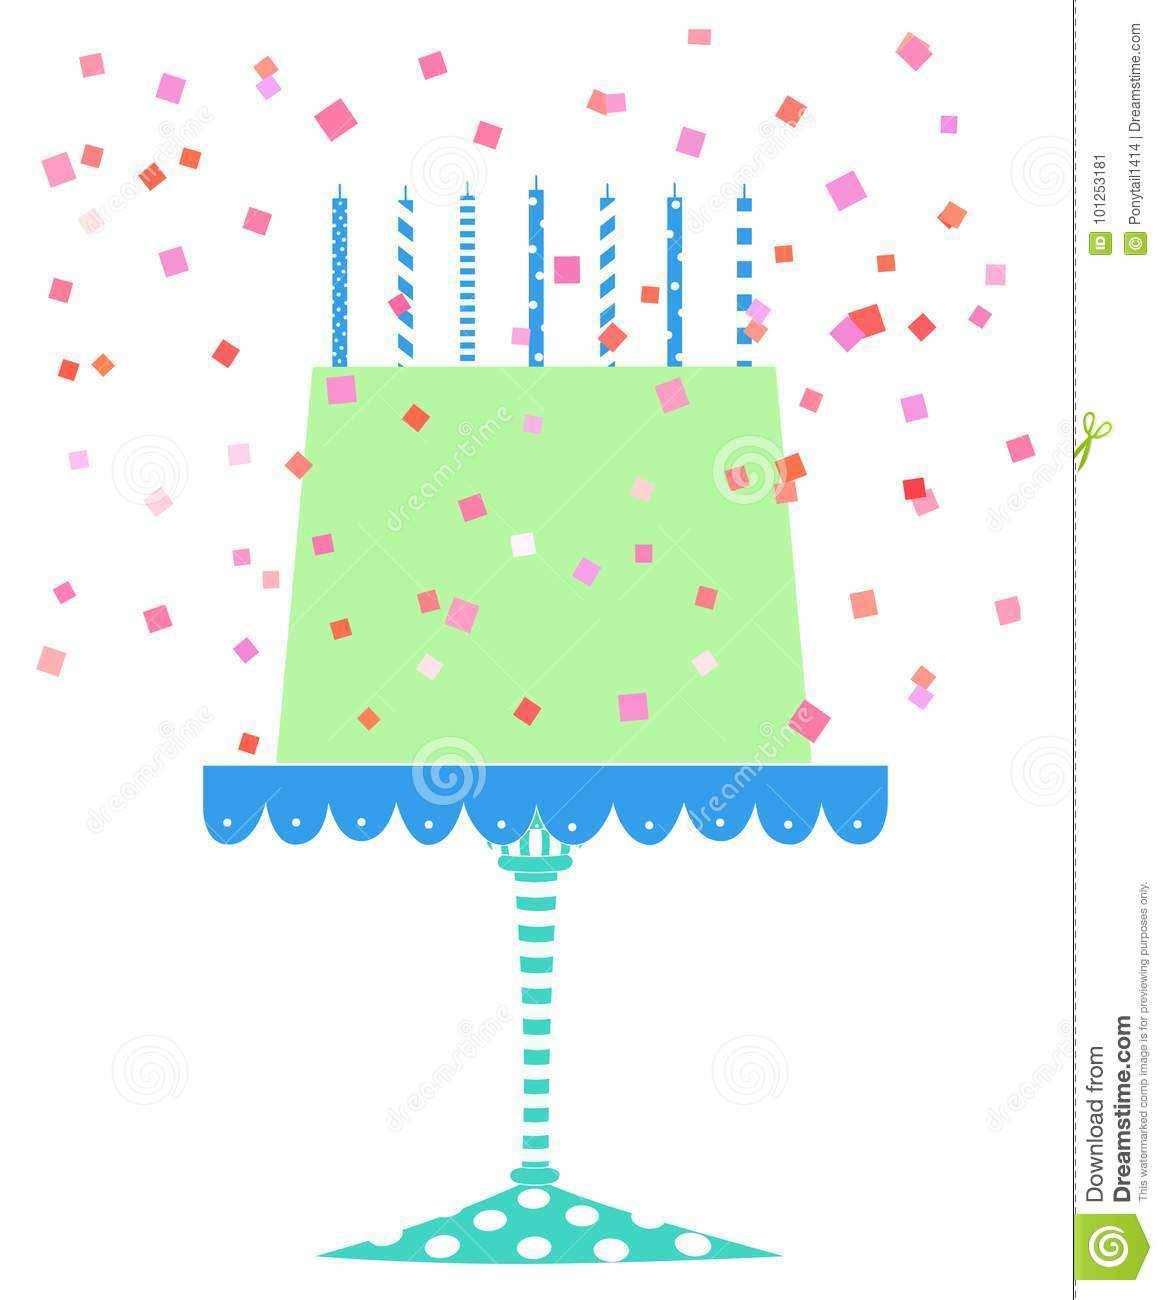 Tremendous Cute Festive Birthday Cake With Confetti Stock Illustration Funny Birthday Cards Online Alyptdamsfinfo